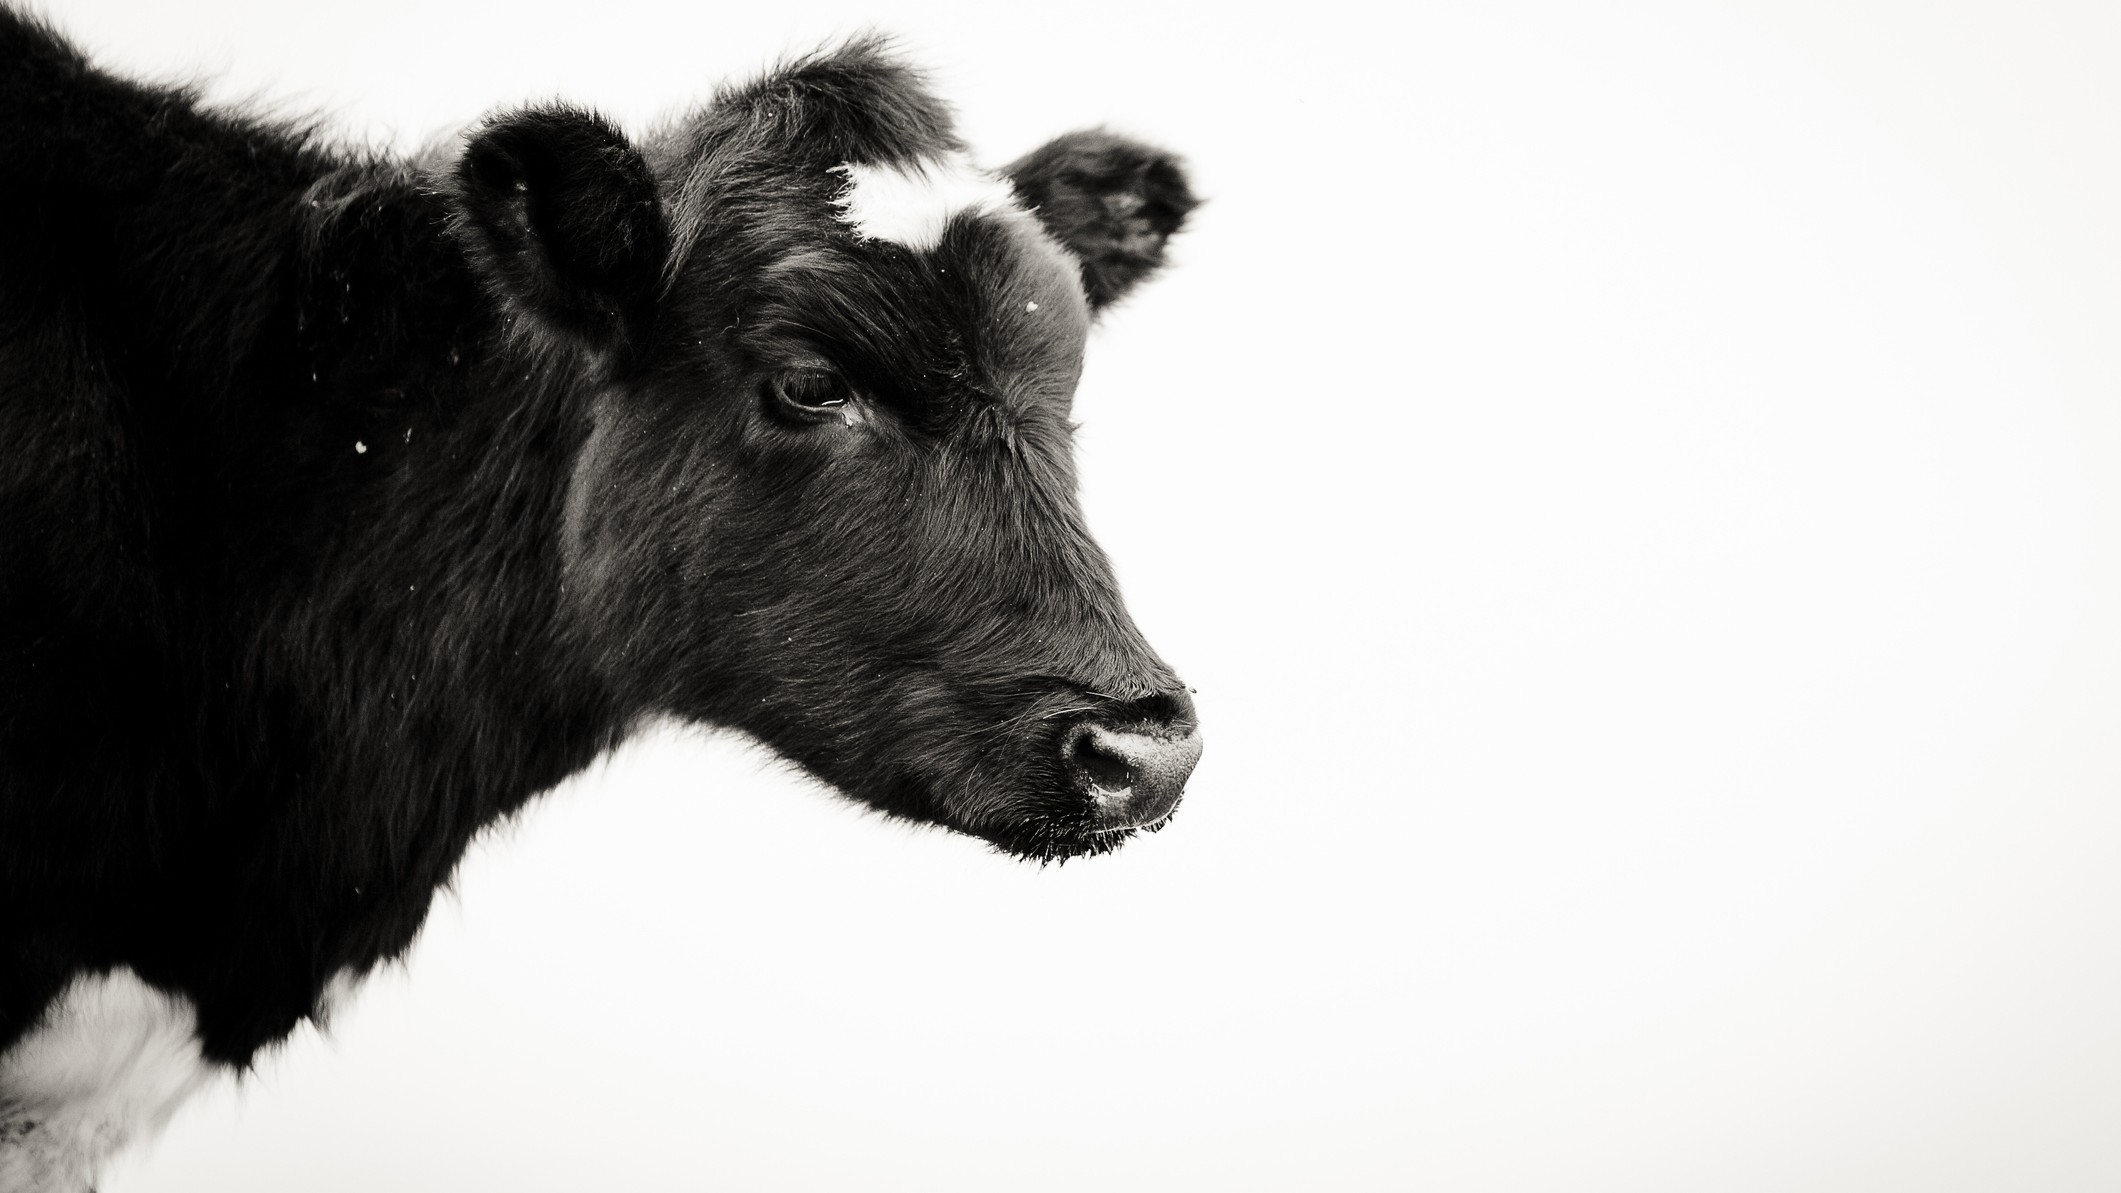 flat dairy asx share price represented by sad looking black cow